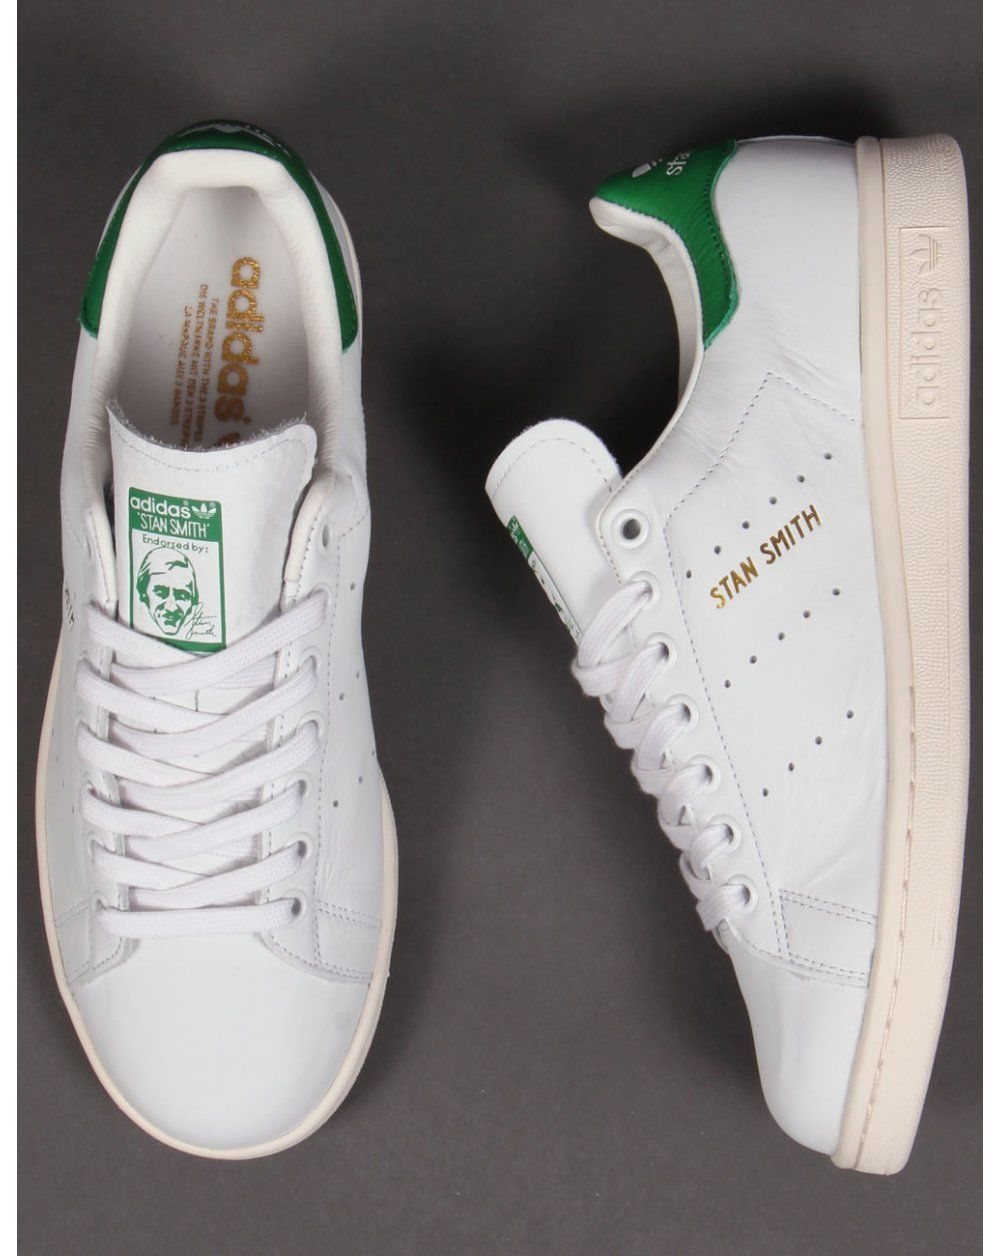 084a1178e09 Adidas Originals Stan Smith Trainers in White   Green (Gold Print) (UK  Sizes) in Clothes